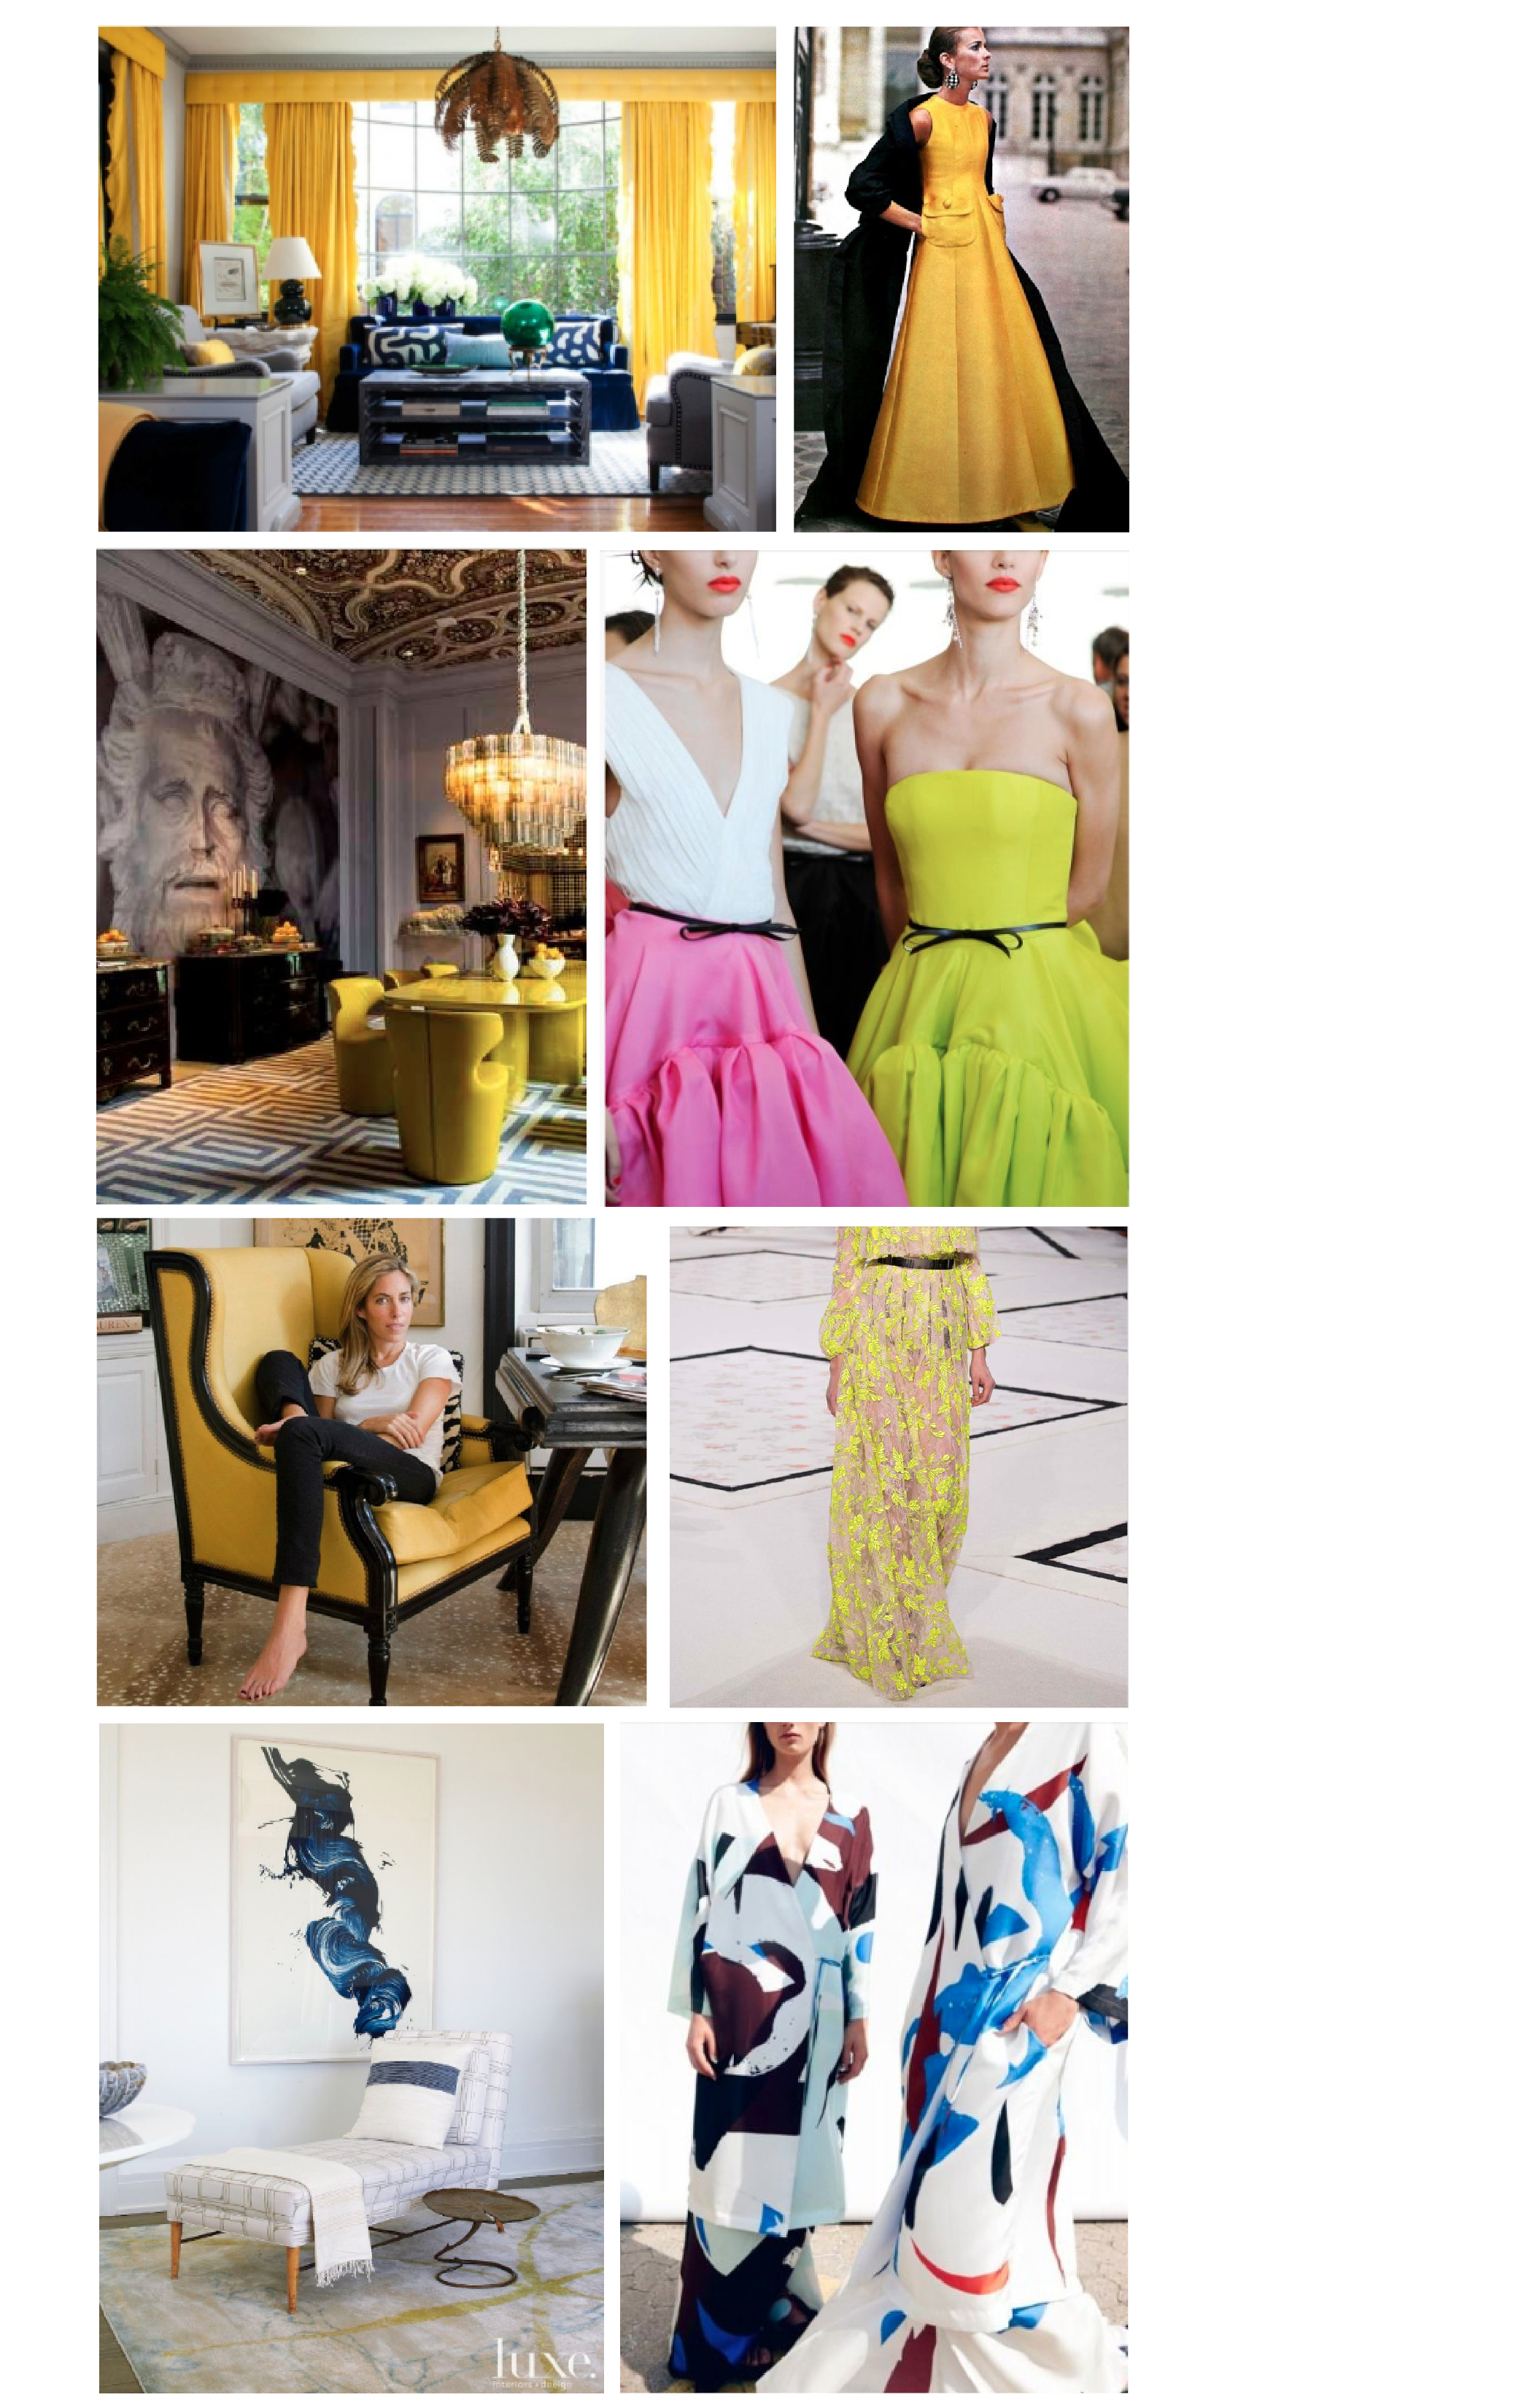 Row 1:  Amanda Nisbet Design  //  Vintage Italian Fashion . Row 2:  Dining Room  by David Bastos //  Oscar de la Renta . Row 3:  Glam Yellow Wingback Chair  //  Giambattista Valli ; Row 4: James Nares painting from  Luxe Magazine  // Designs by  Freya Dalsjo .